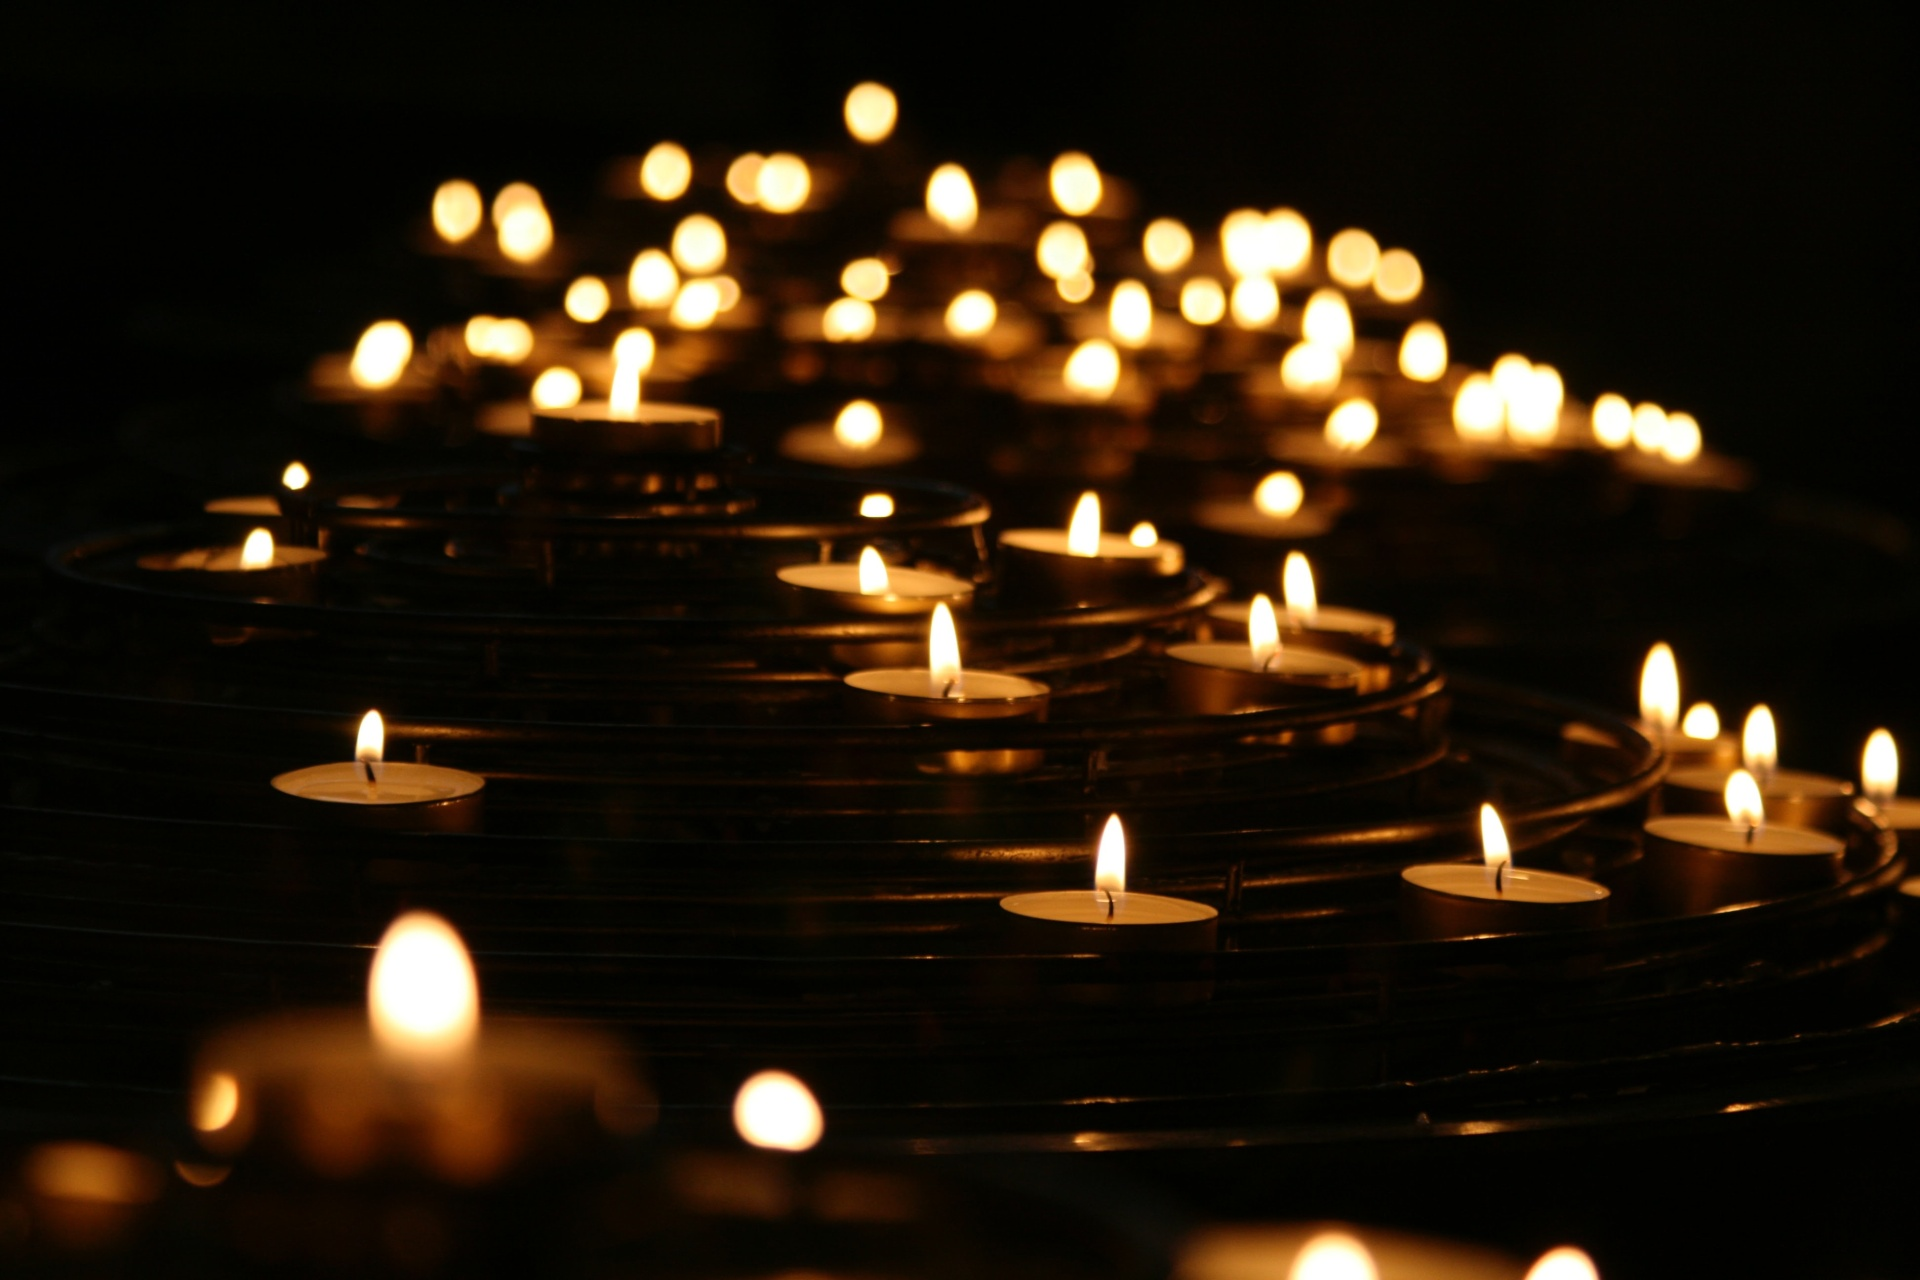 low-angled photo of lightened candles